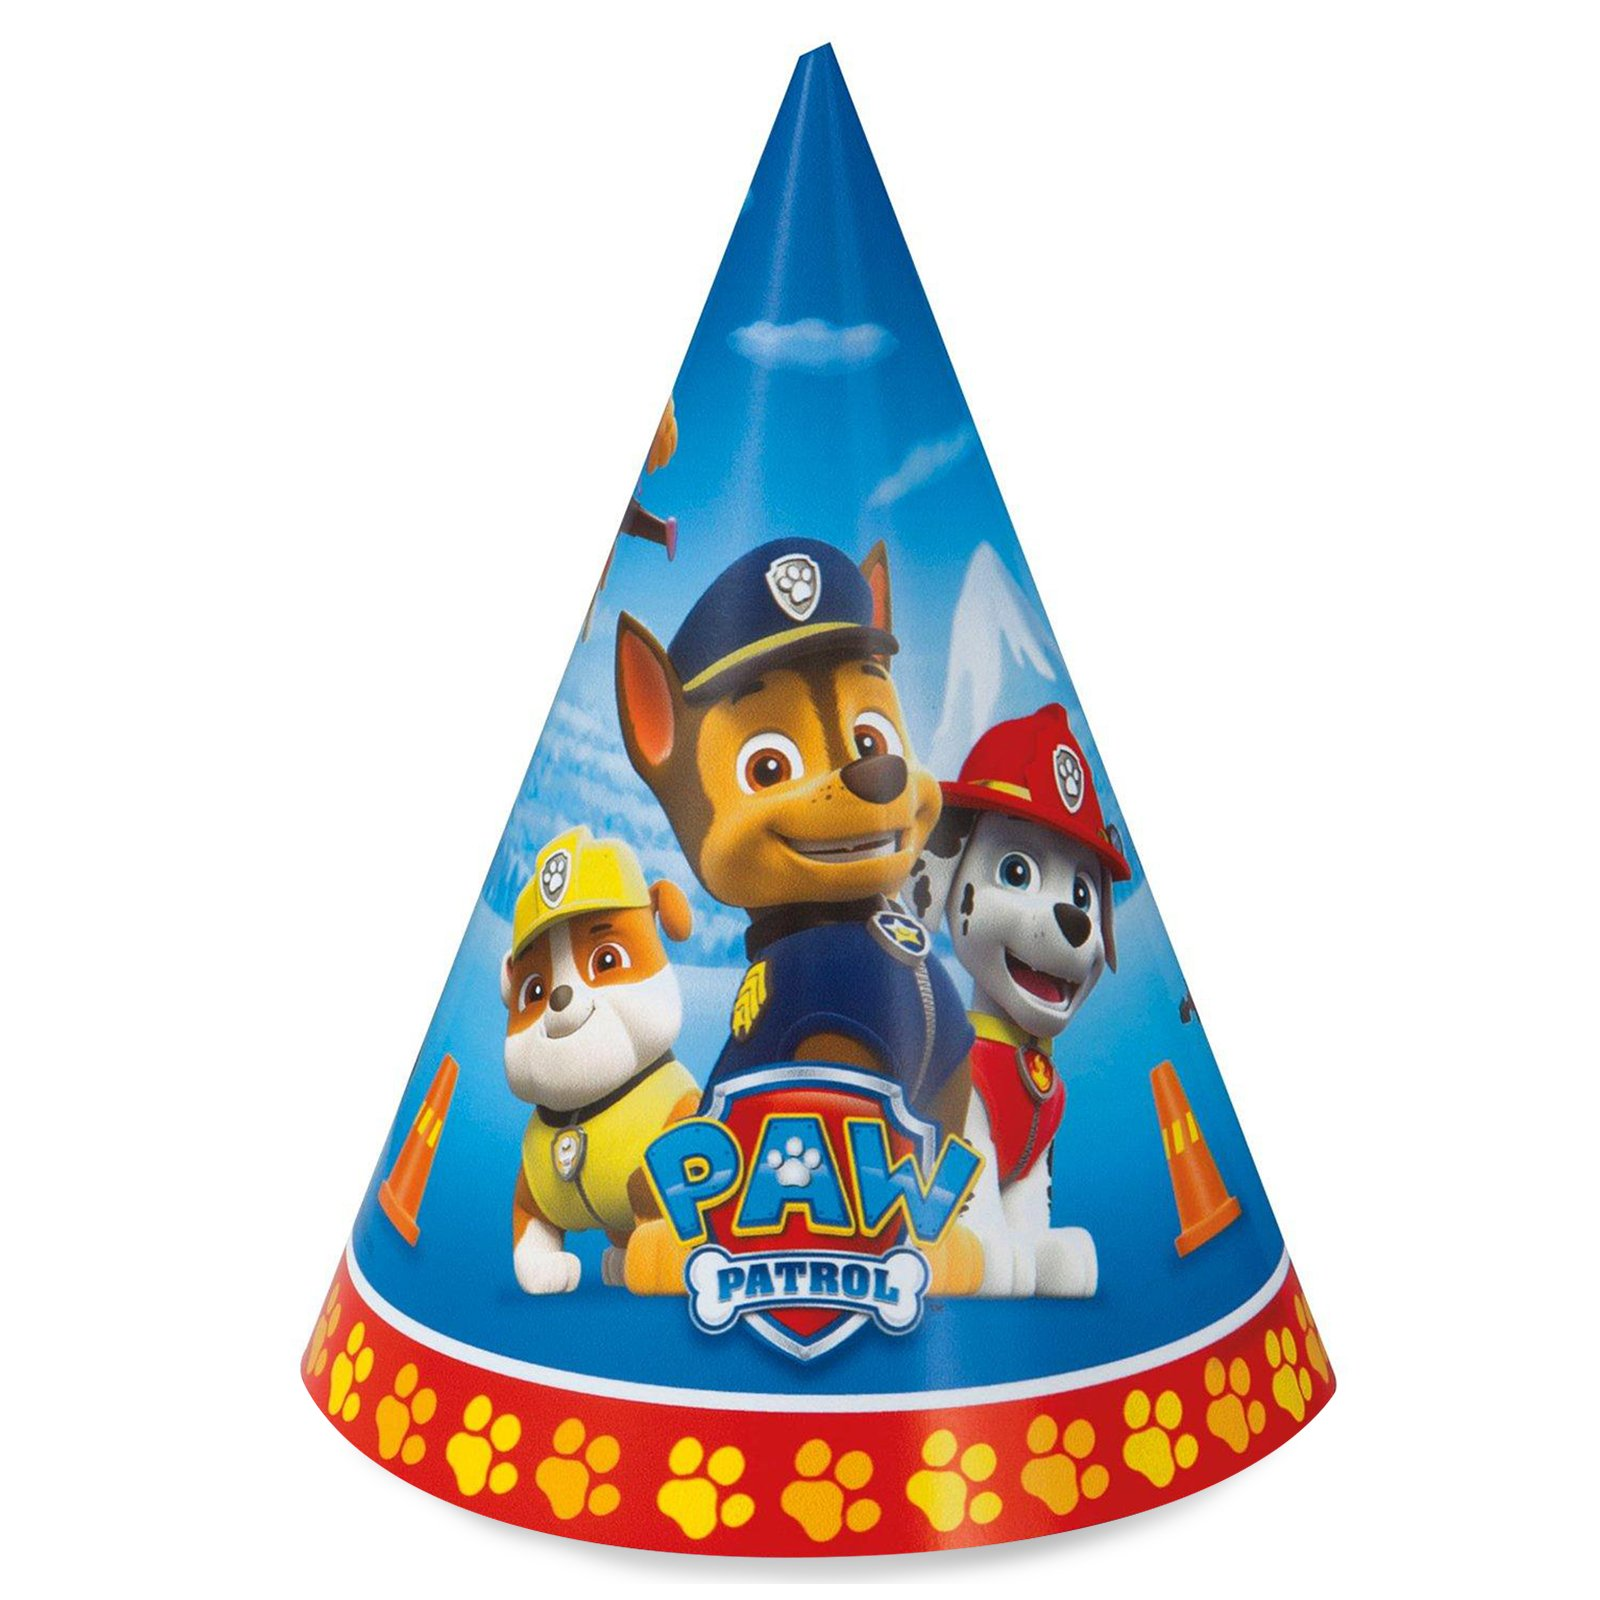 Paw Patrol birthday party supplies 16 pack cone party hats by BirthdayExpress